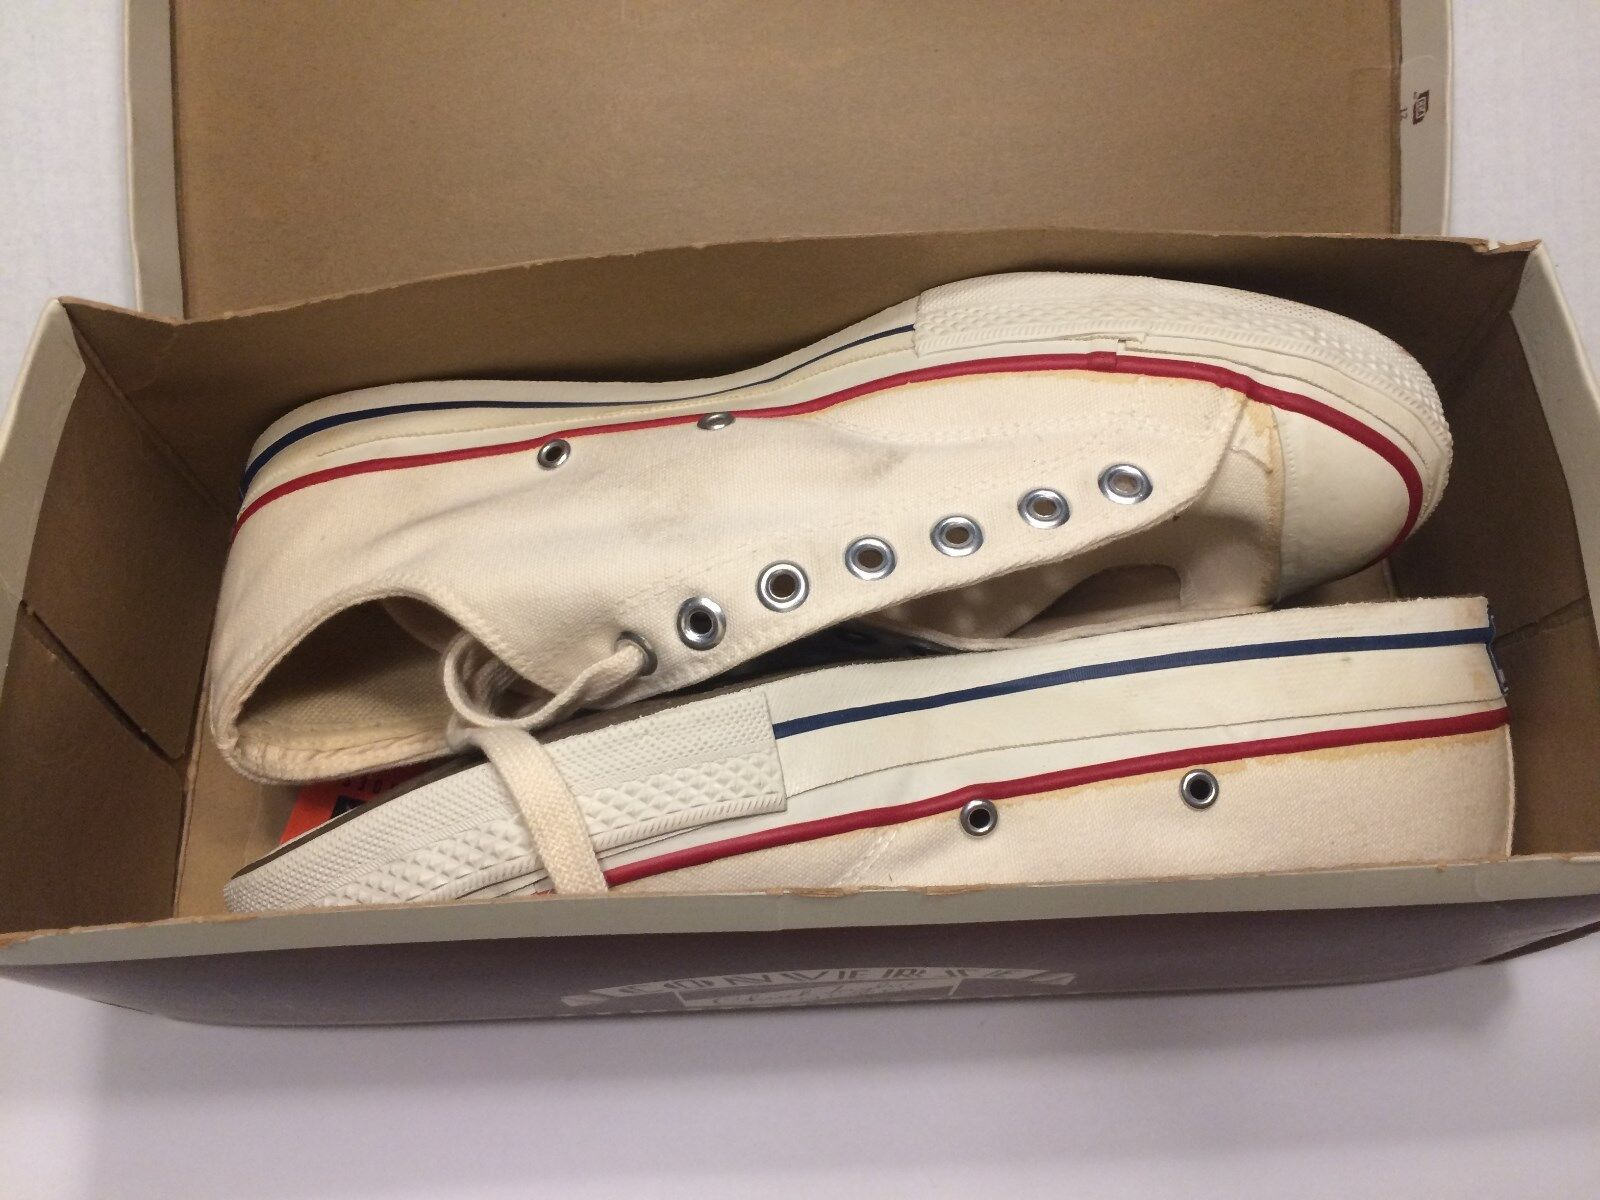 Vintage Converse Chuck Taylor All Star Sneakers in Original Box